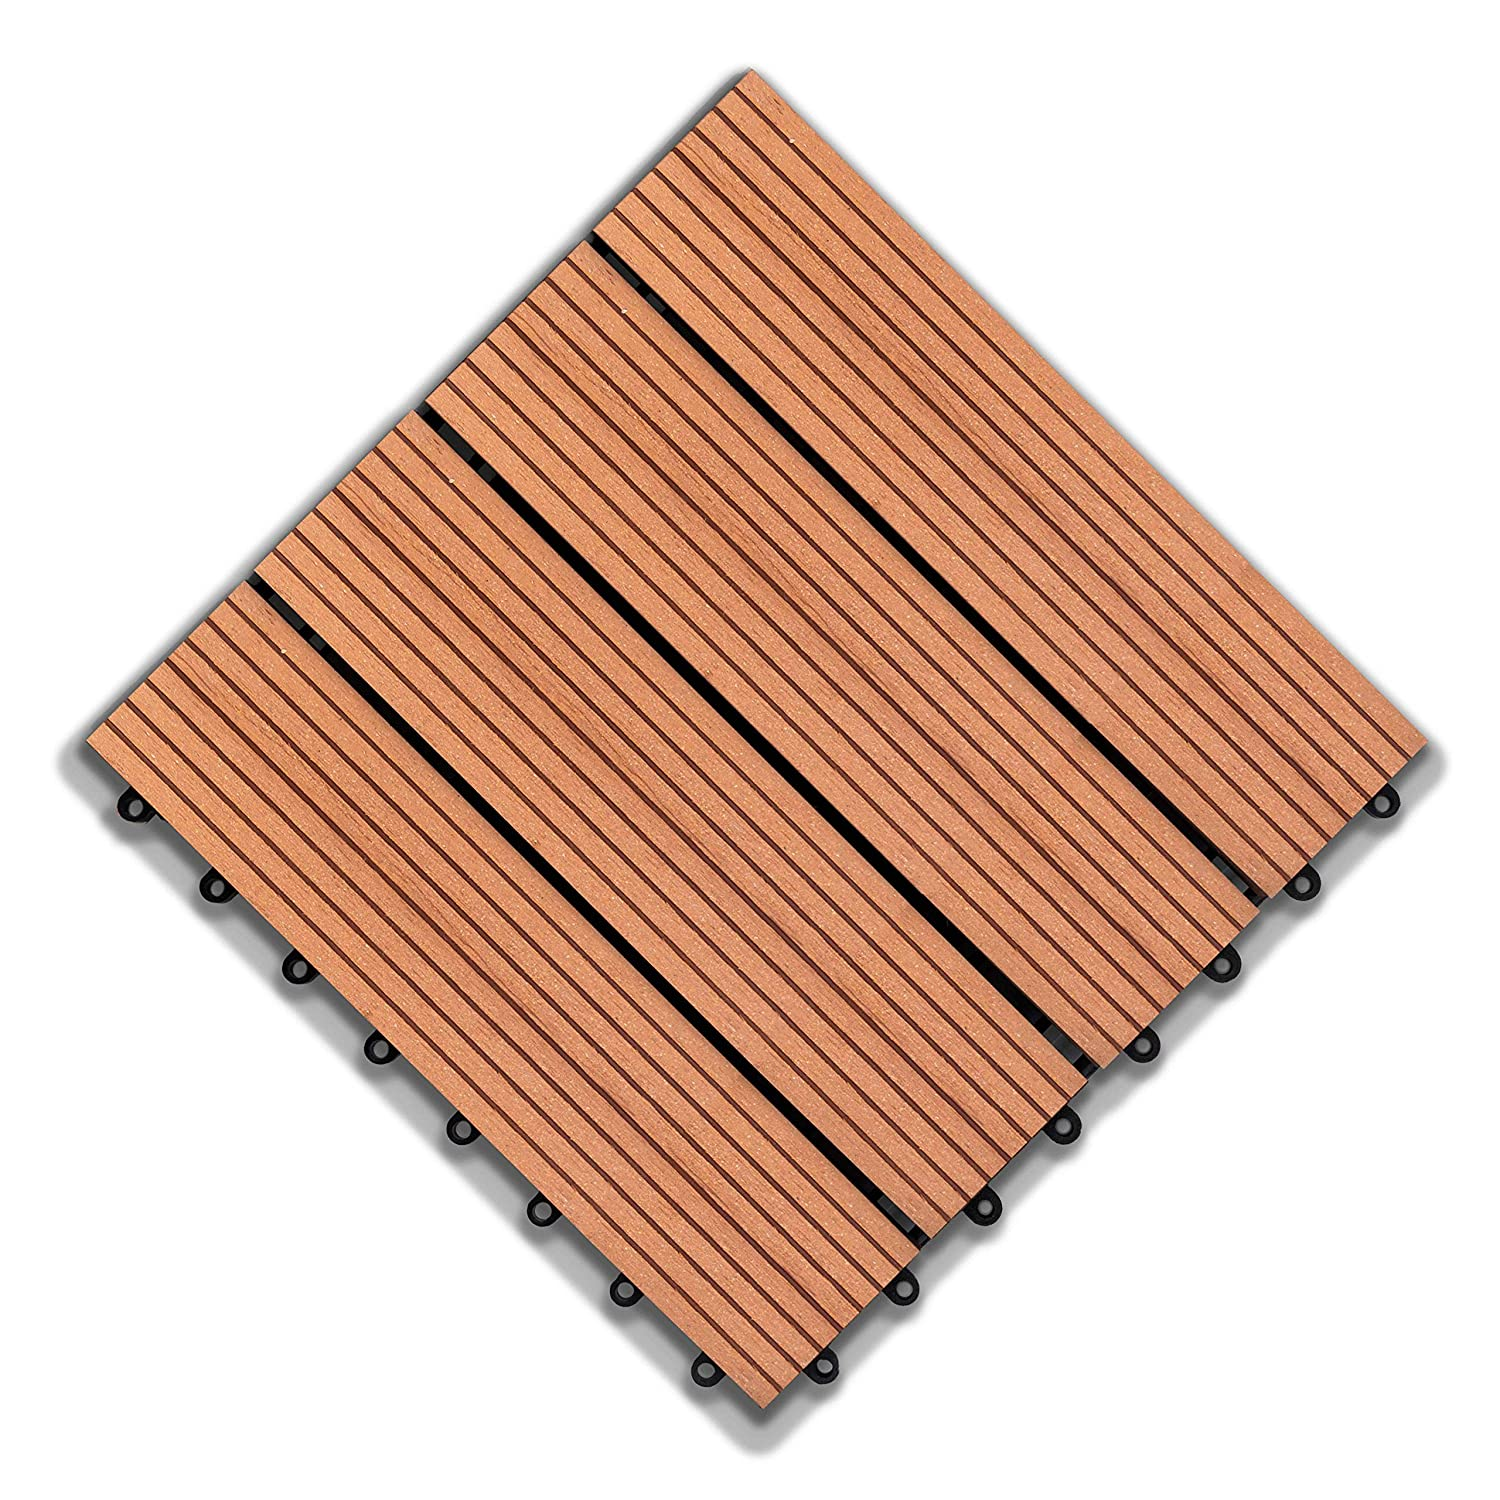 Rosetta- Interlocking Deck Tiles Waterproof Outdoor Flooring- Red Cedar